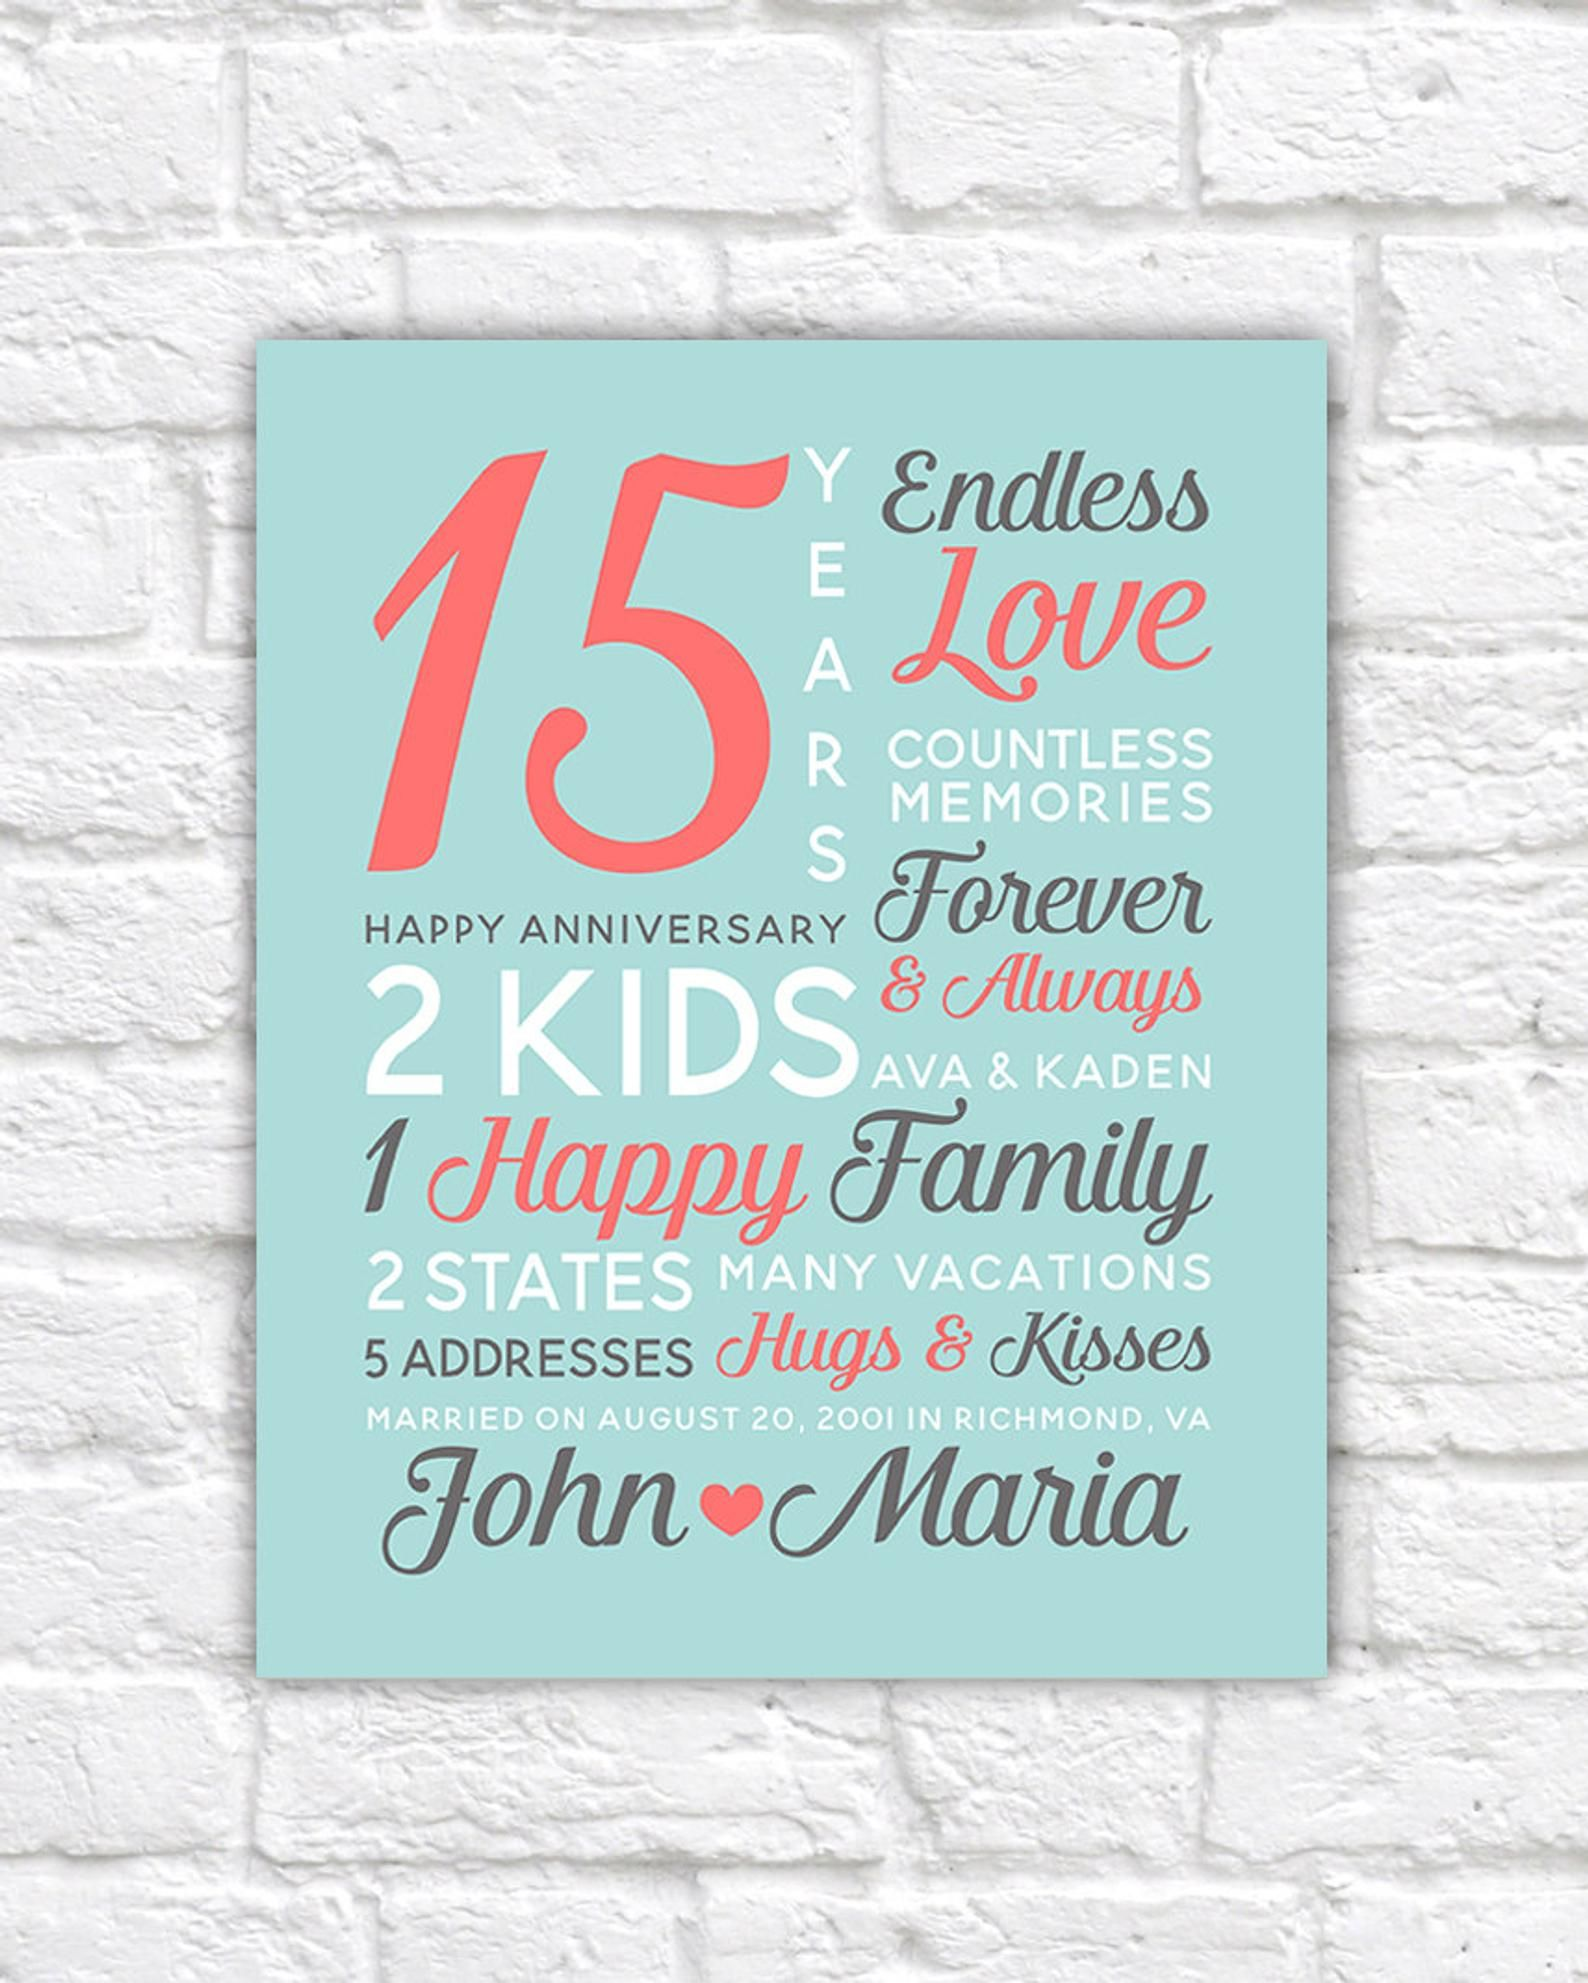 Personalized Anniversary Gifts Wedding Date Canvas Art 15th Etsy In 2021 Personalized Anniversary Gifts Personalized Anniversary 15 Year Anniversary